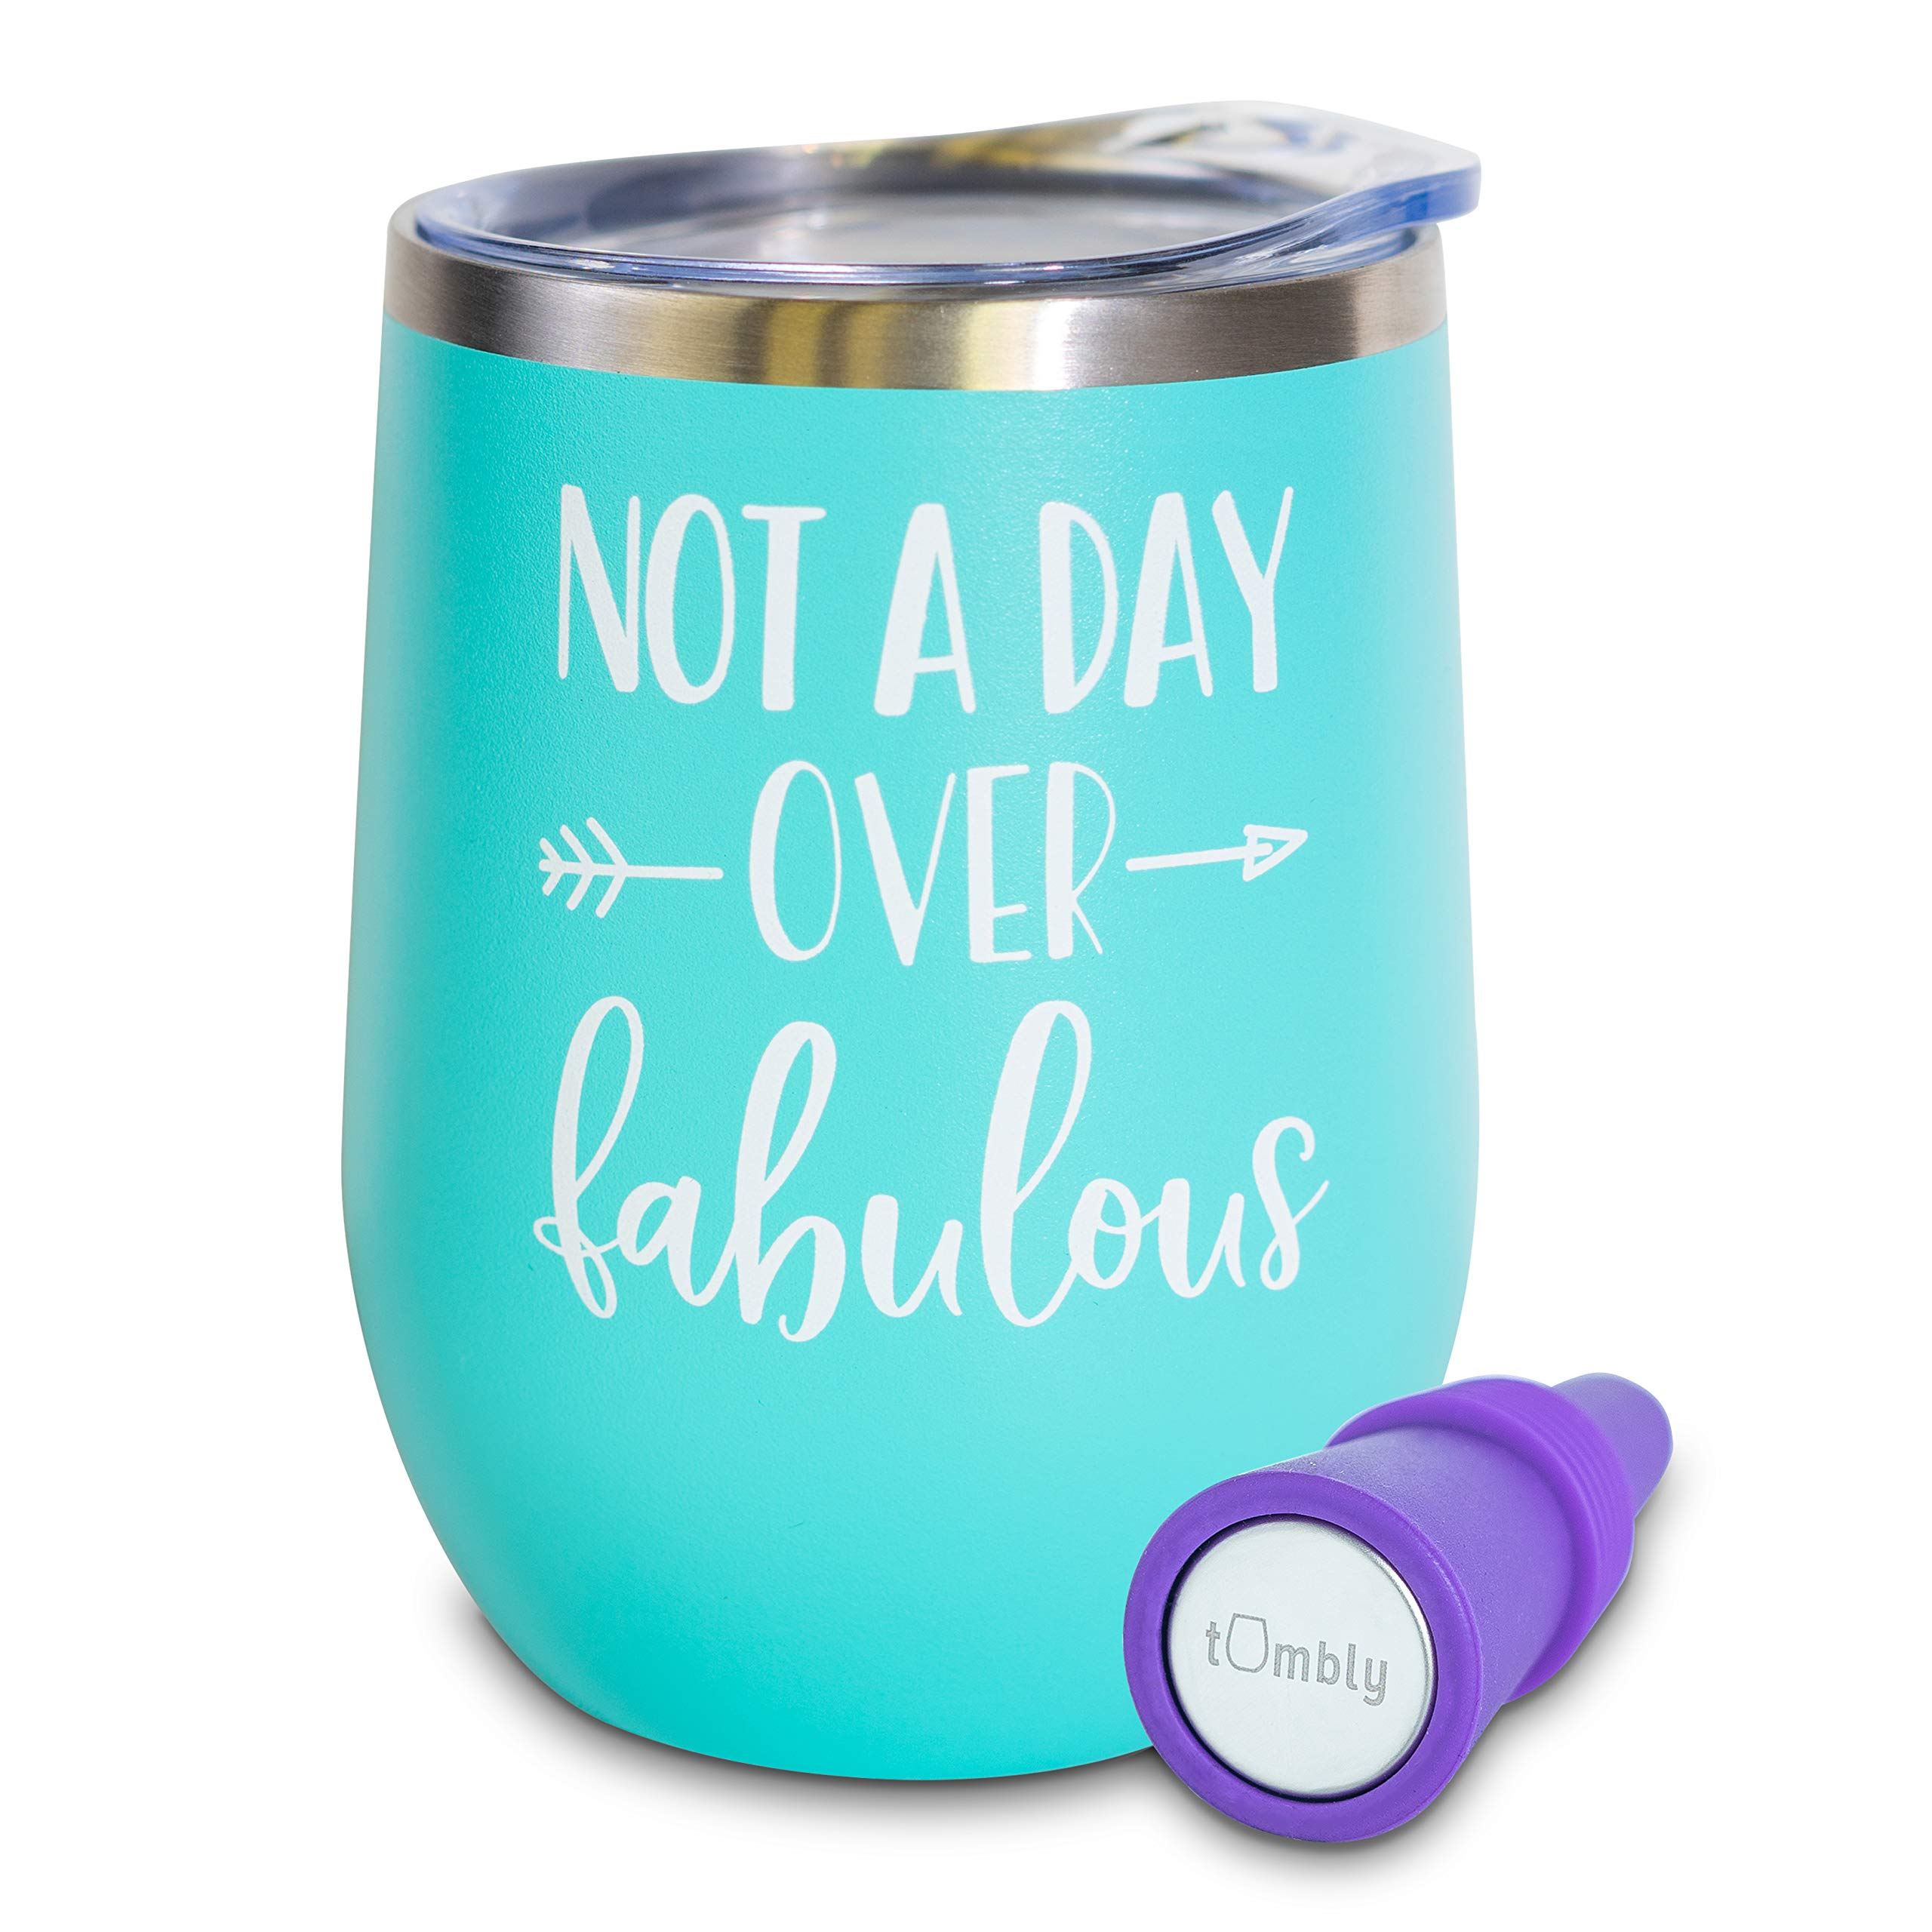 Not A Day Over Fabulous Wine Tumbler - 12 oz Stainless Steel Tumbler with Lid - Includes Wine Stopper - 30th, 40th, 50th, 60th, Birthday Gifts for Women - Birthday Wine Glass - Wine Gifts for Women